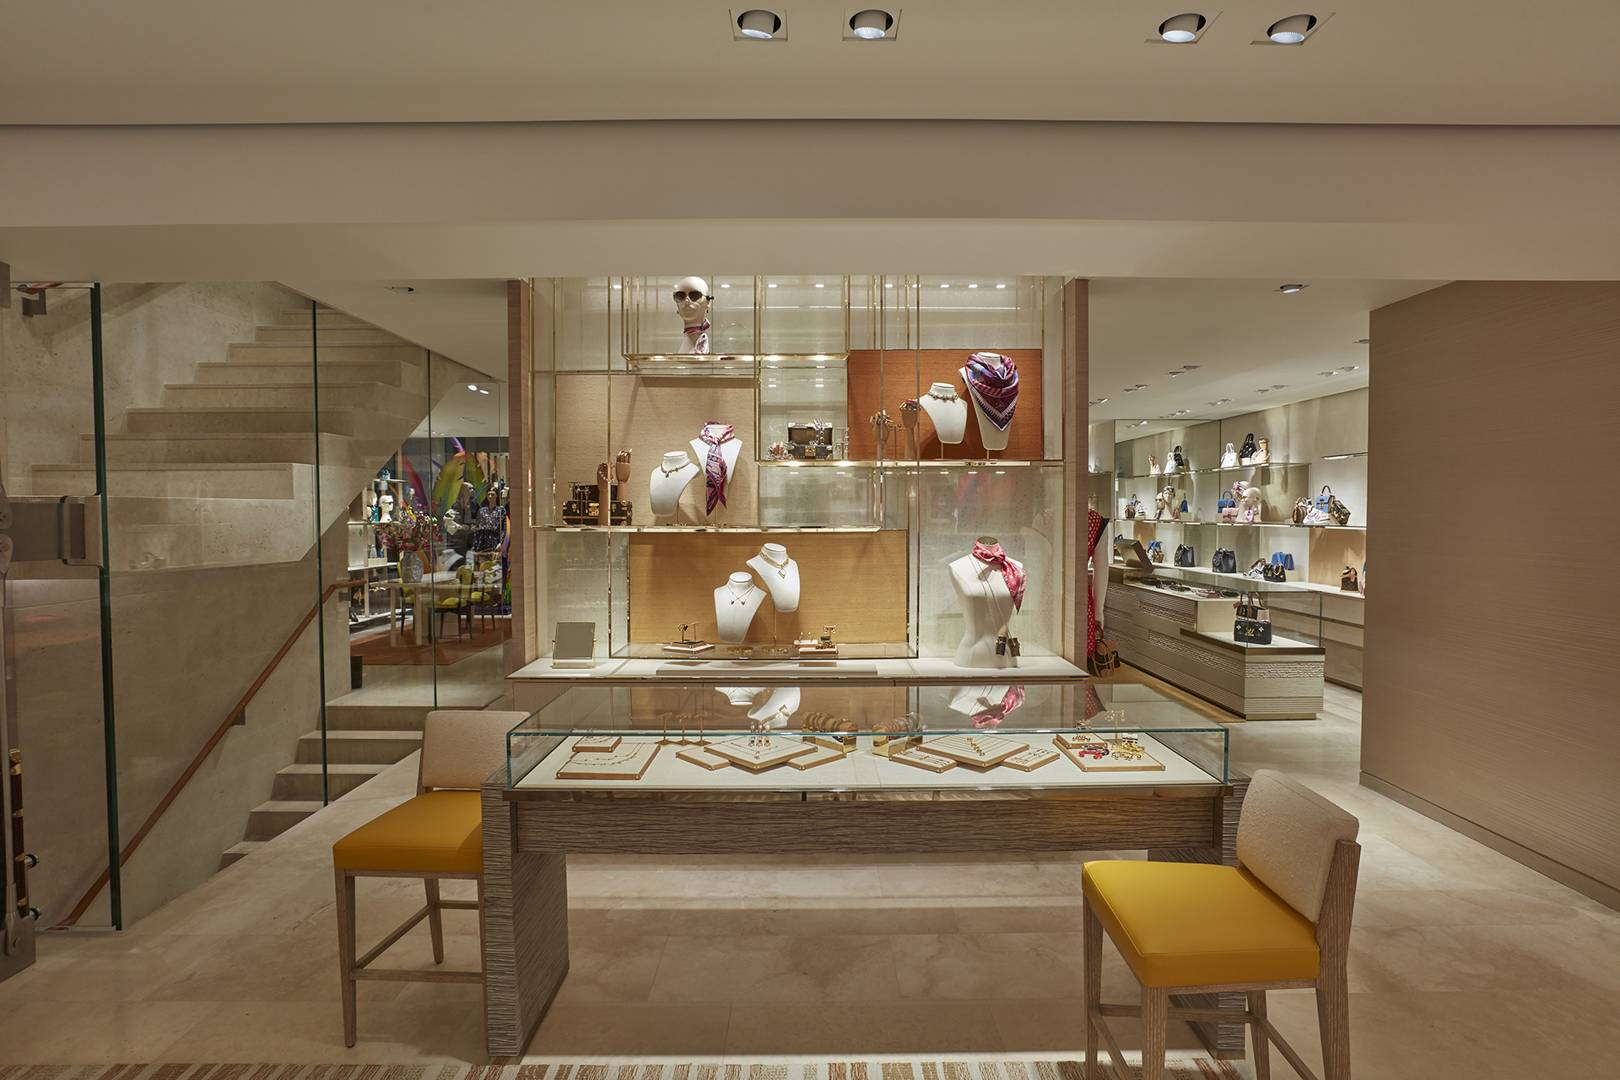 b52edcb6858 A First Look Inside The Modern Brutalism Of Louis Vuitton s New Store